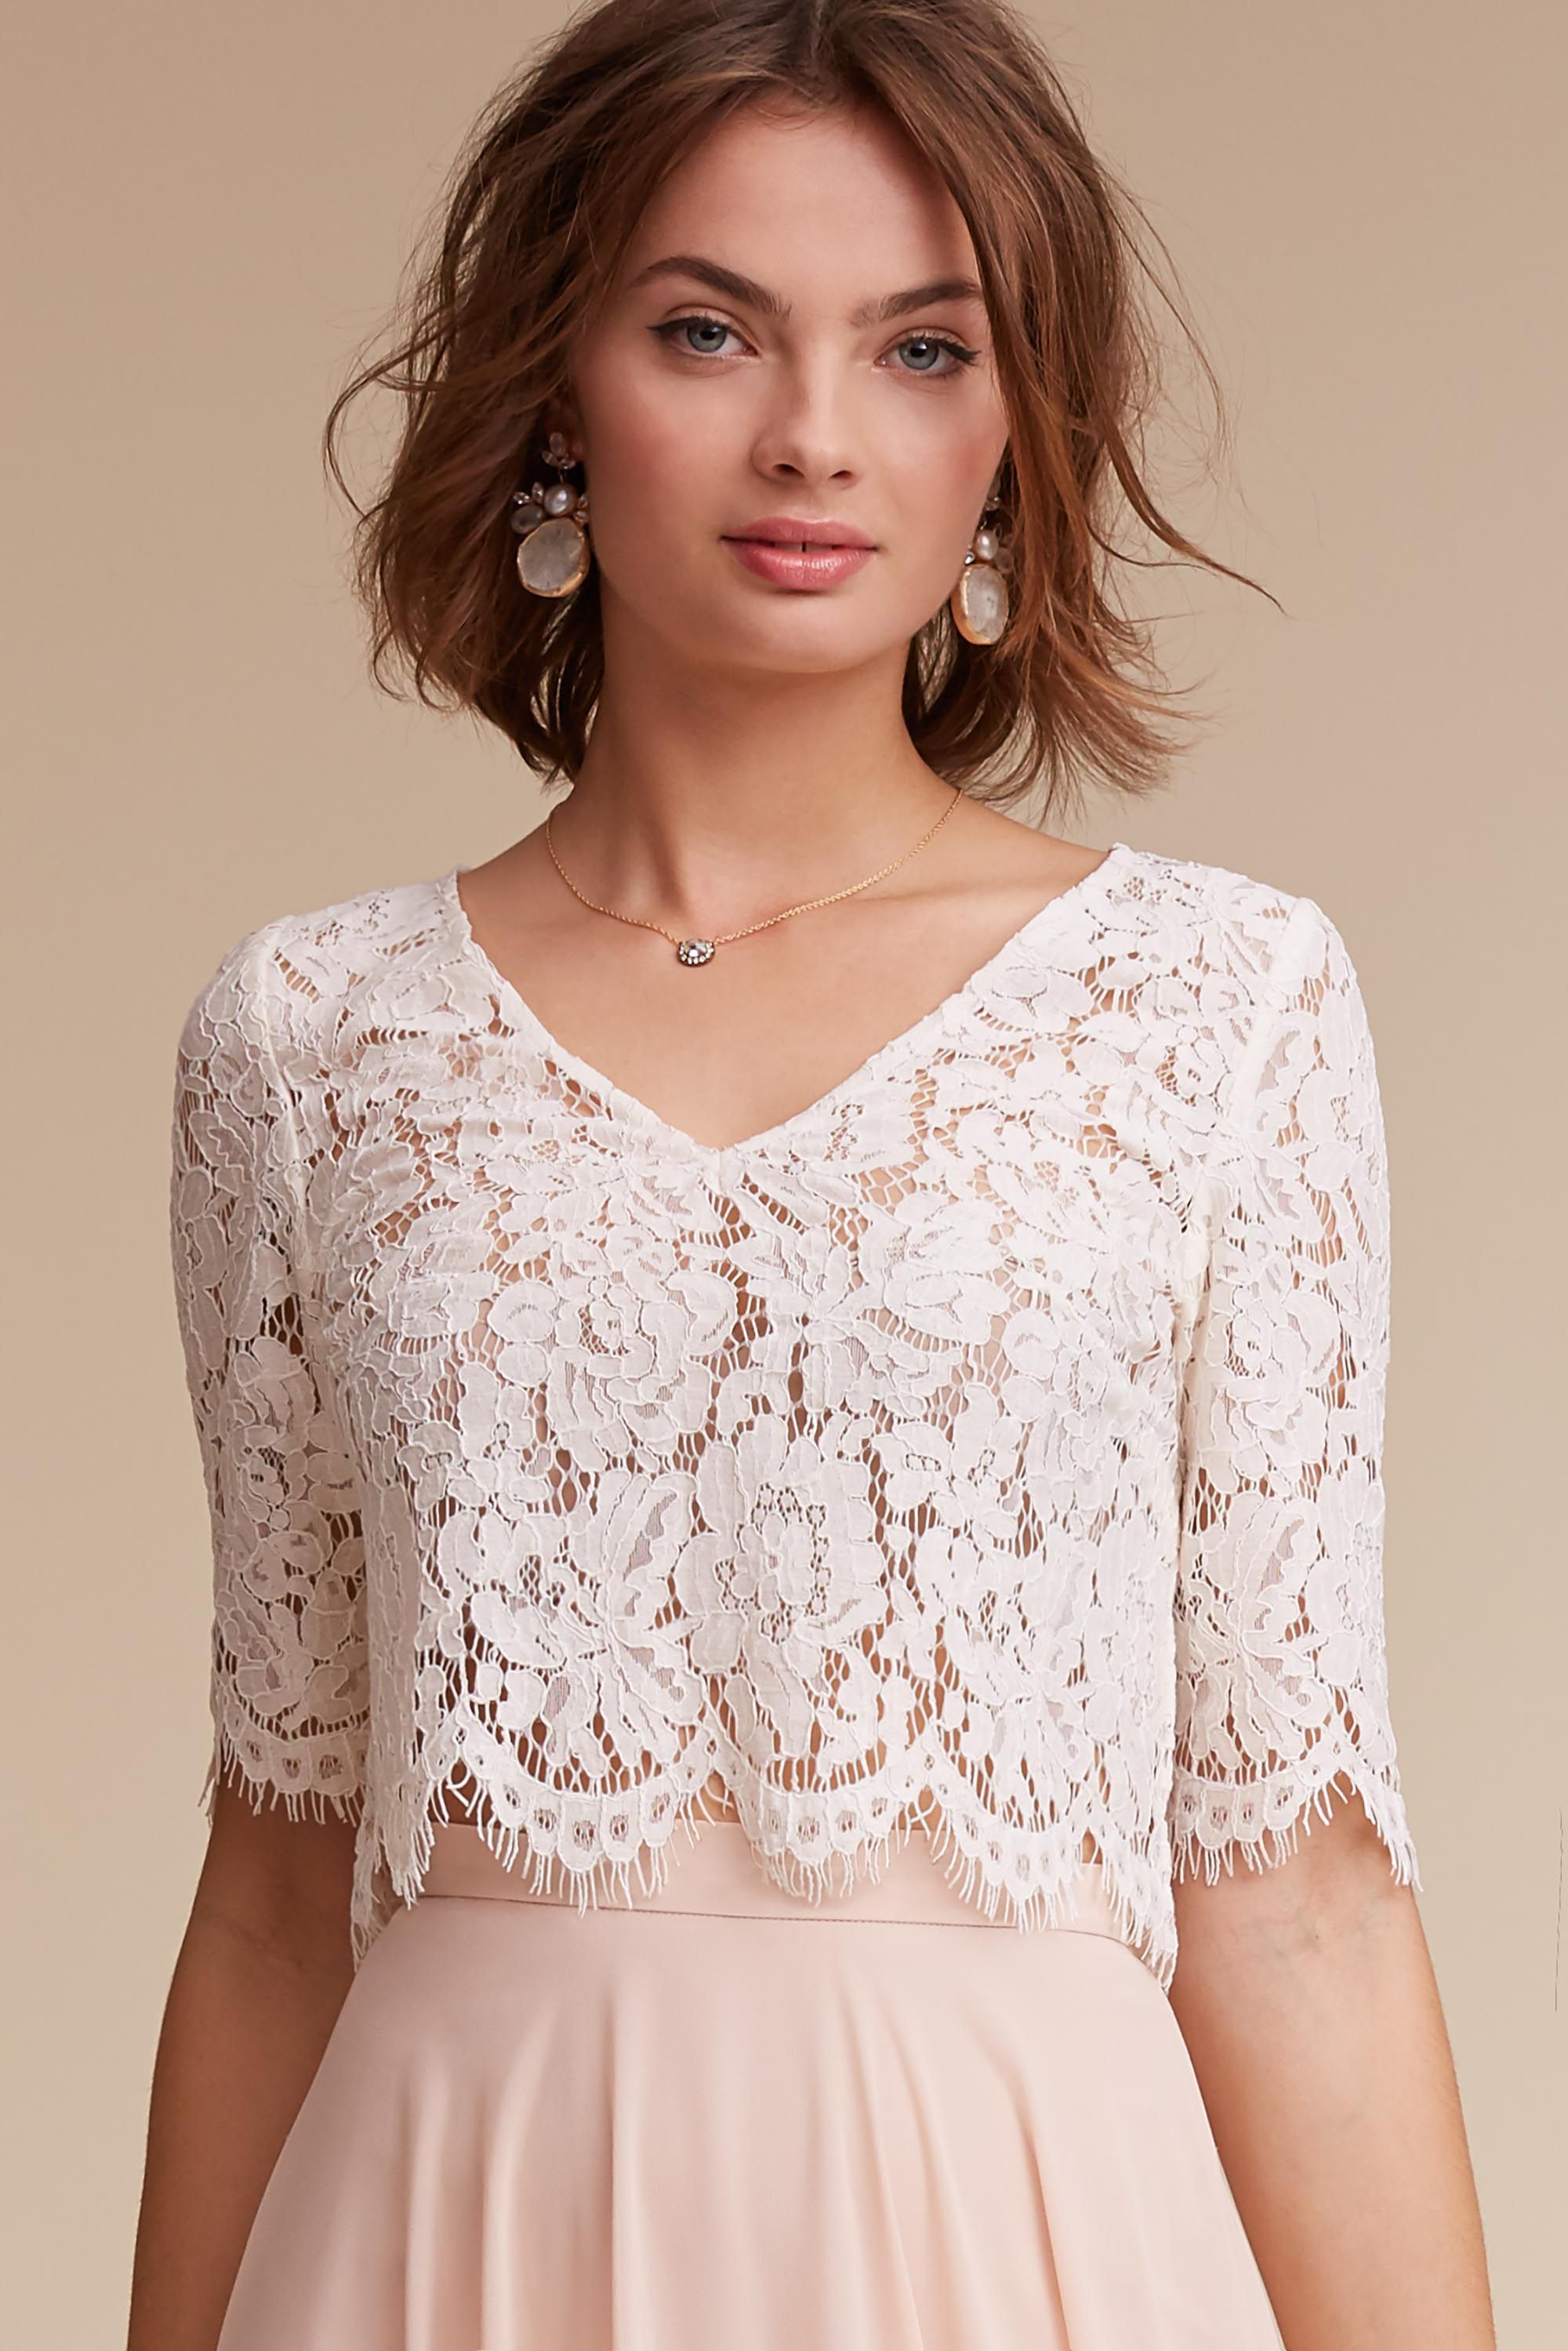 Top dresses to wear to a wedding  Libby Top from BHLDN  Wedding  Pinterest  Tulle skirts Ivory